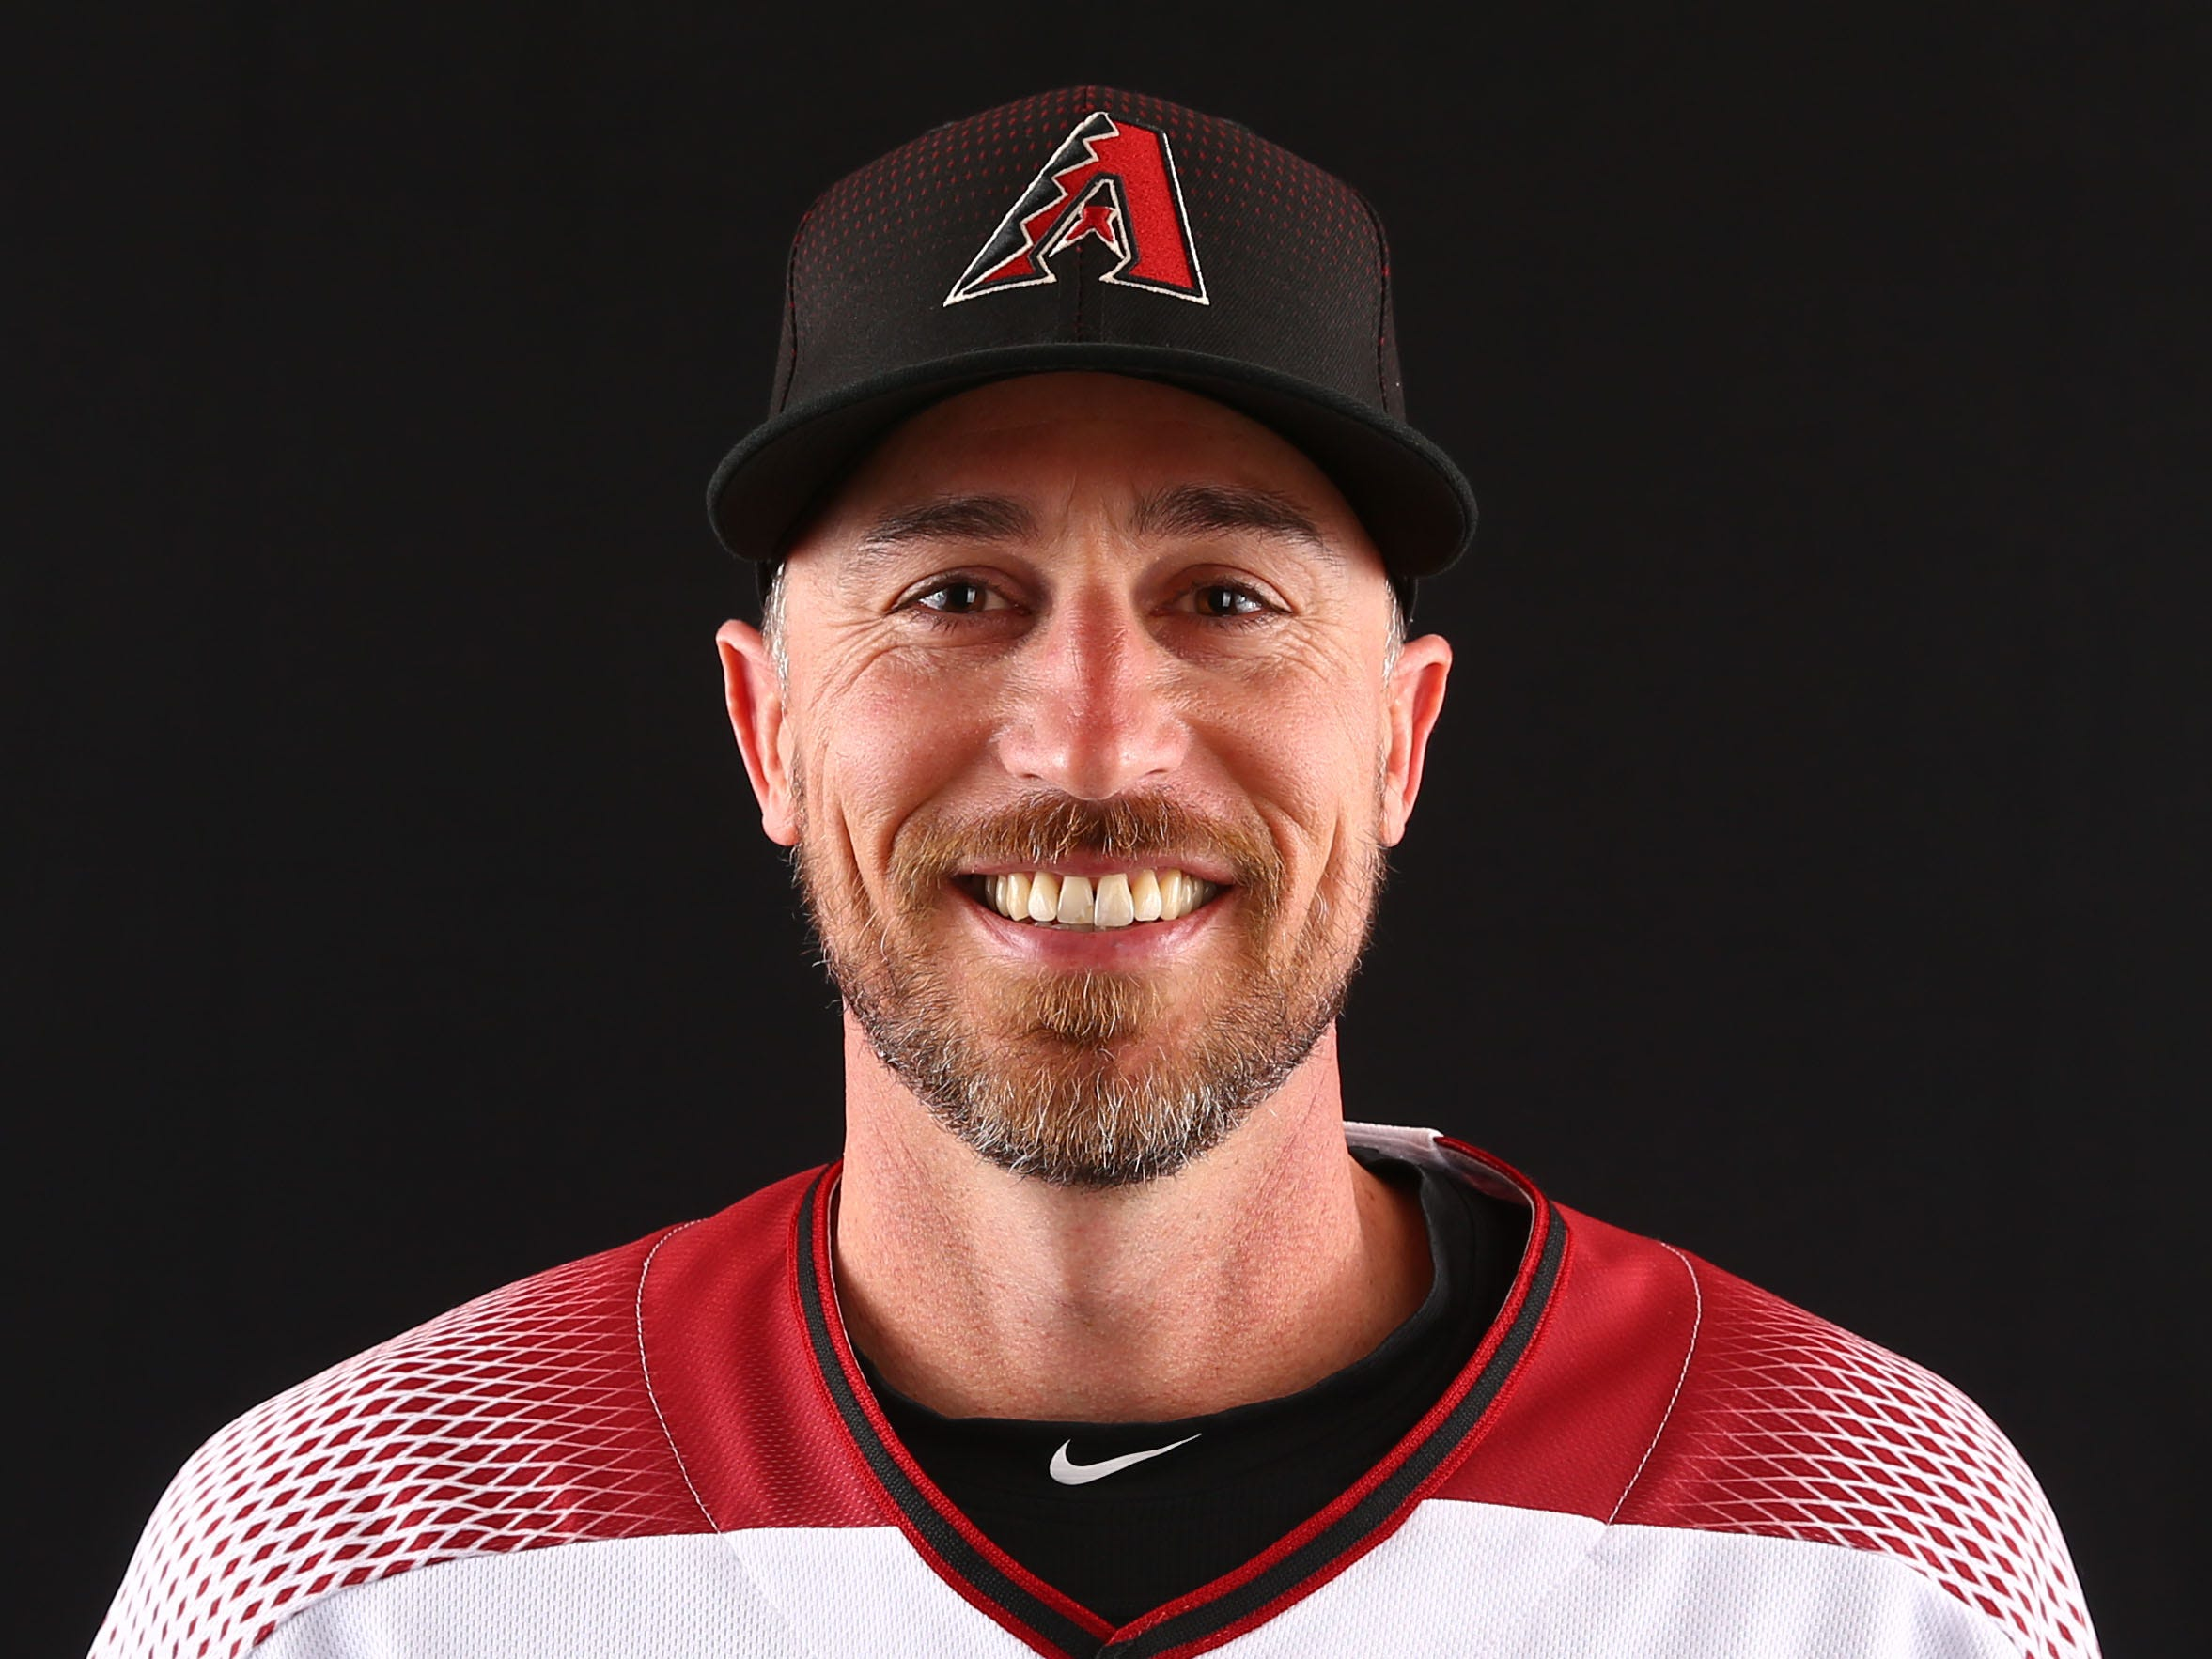 Robby Hammock of Arizona Diamondbacks poses for a photo during the annual Spring Training Photo Day on Feb. 20 at Salt River Fields in Scottsdale, Ariz.